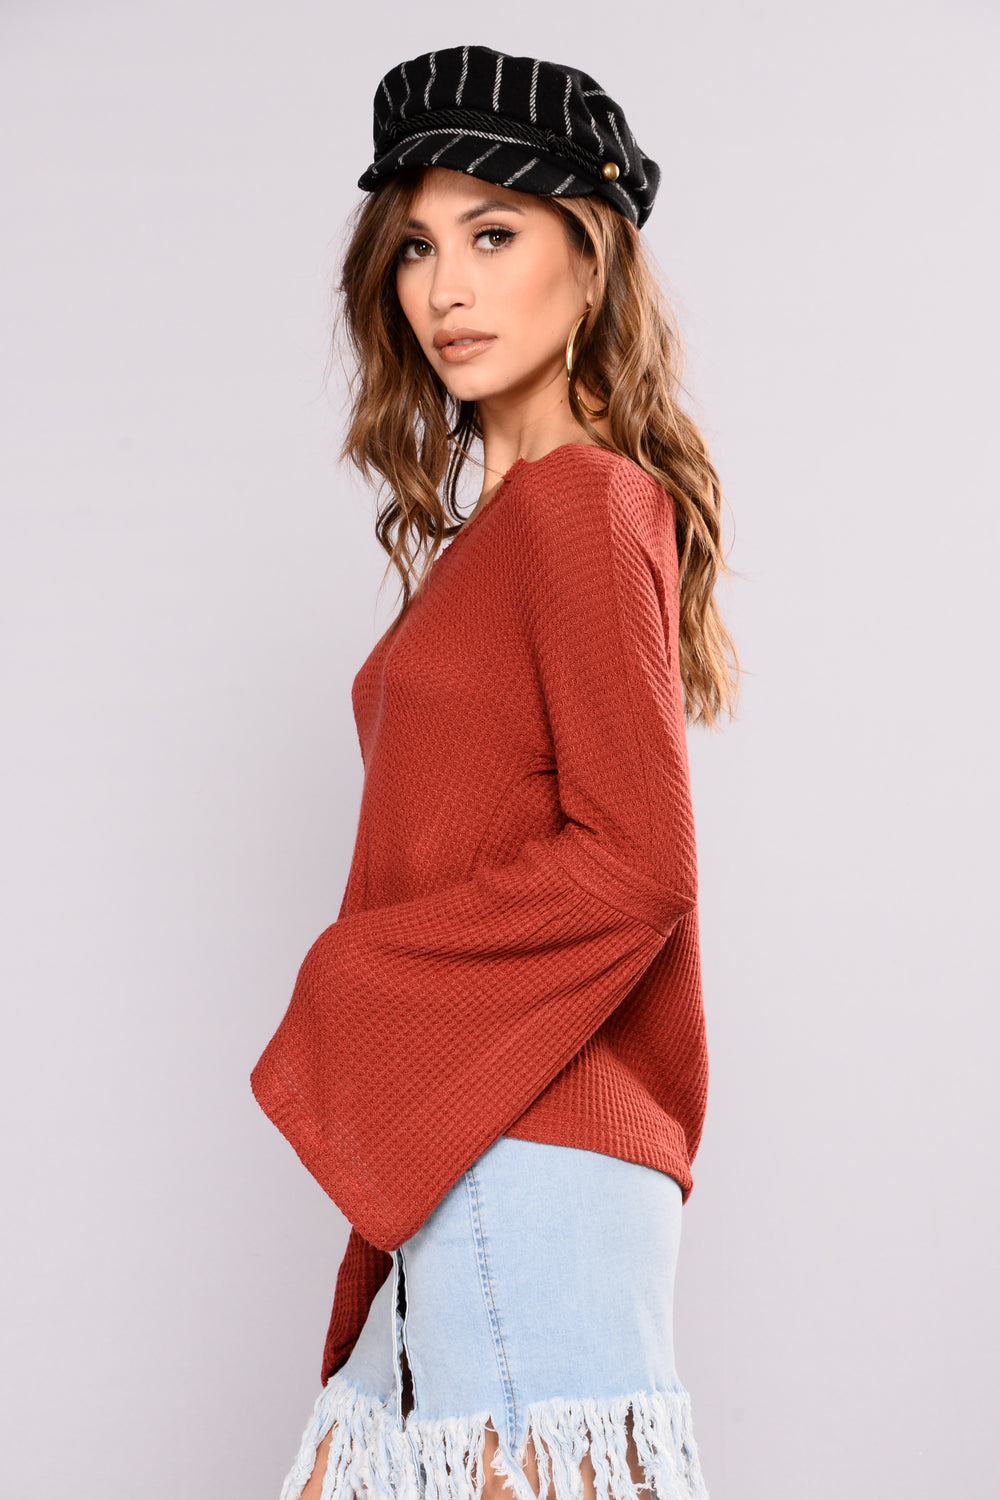 Amber Waves Top - Rust